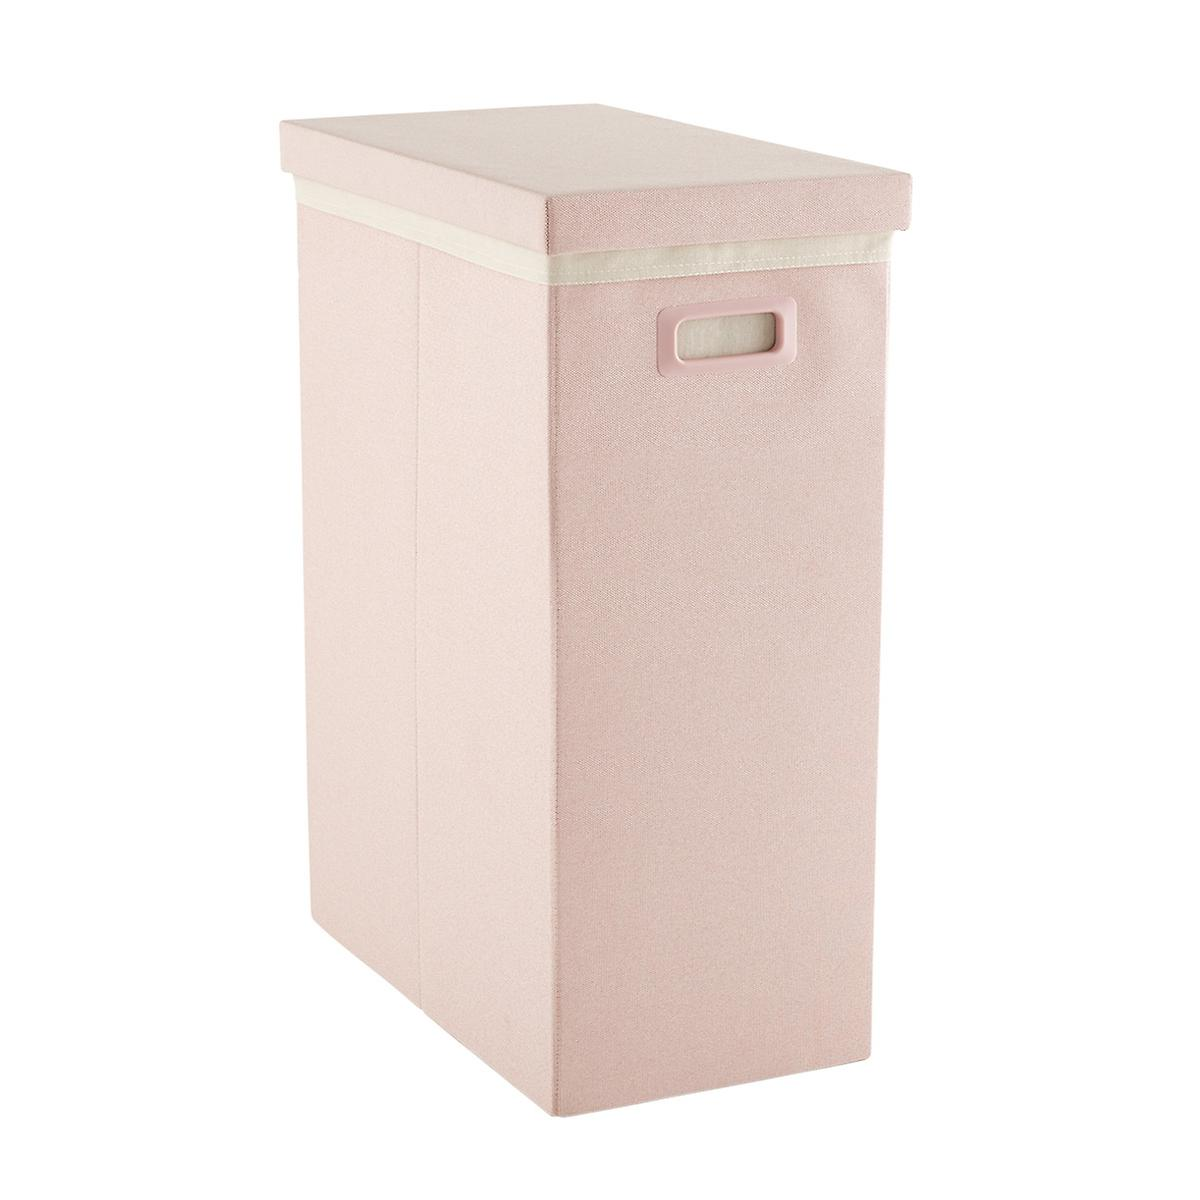 Blush Pink Poppin Laundry Hamper with Lid